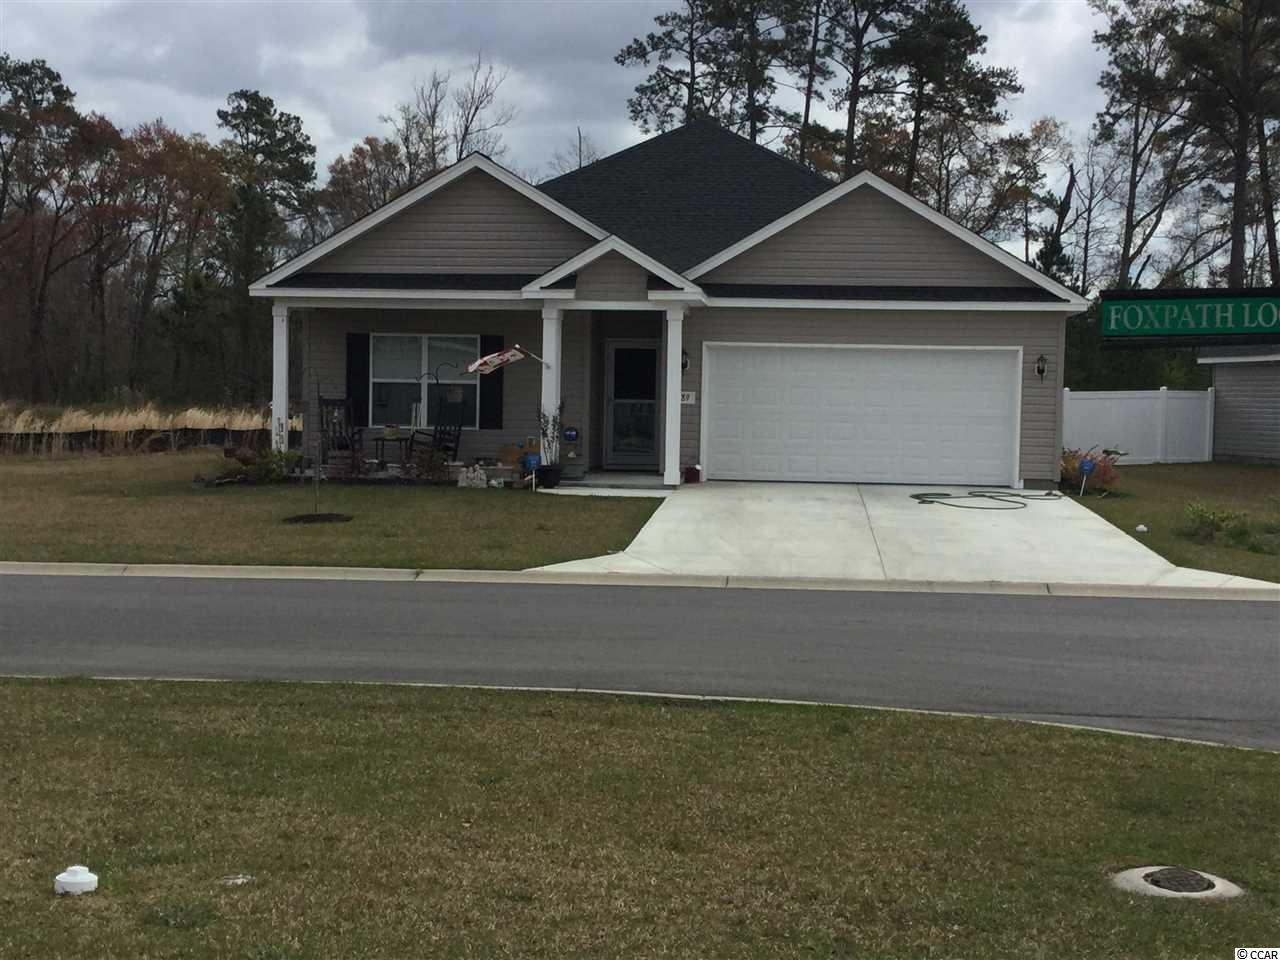 324 Foxpath Loop, Myrtle Beach, SC 29588